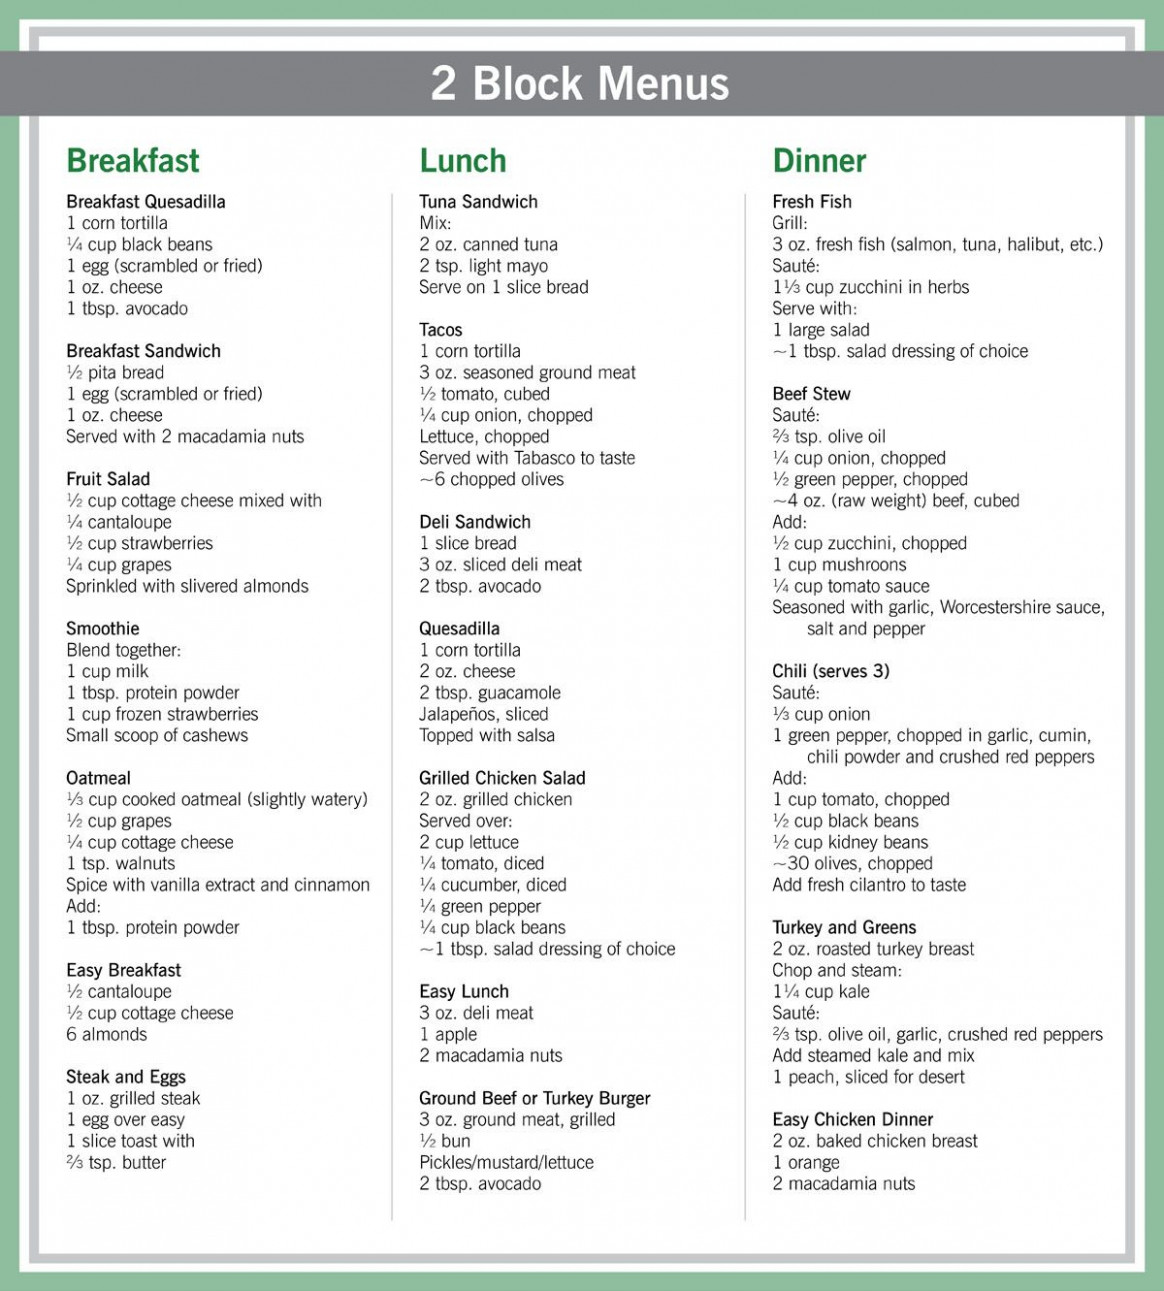 Zone Meal Plans | CrossFit Community | Zone diet, Zone diet ...